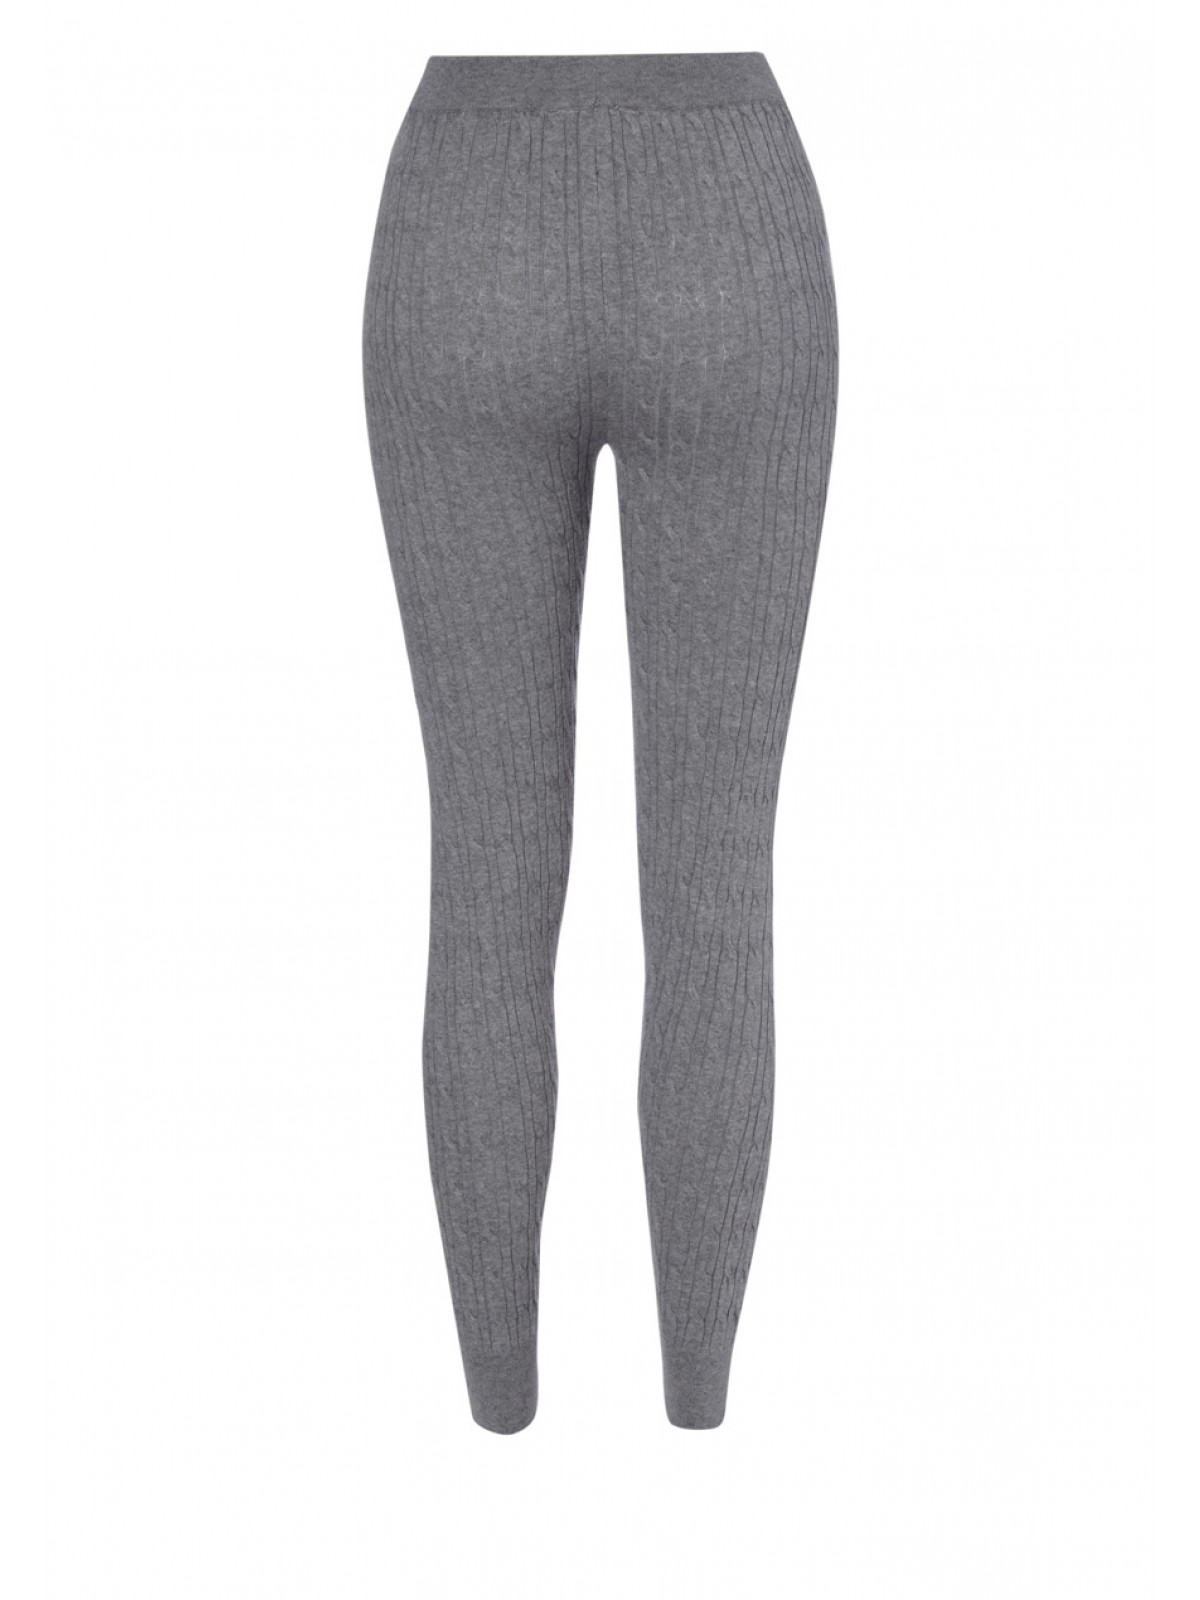 Knitted Leggings home; womens cable knit leggings. previousnext zoom RGMCWOJ